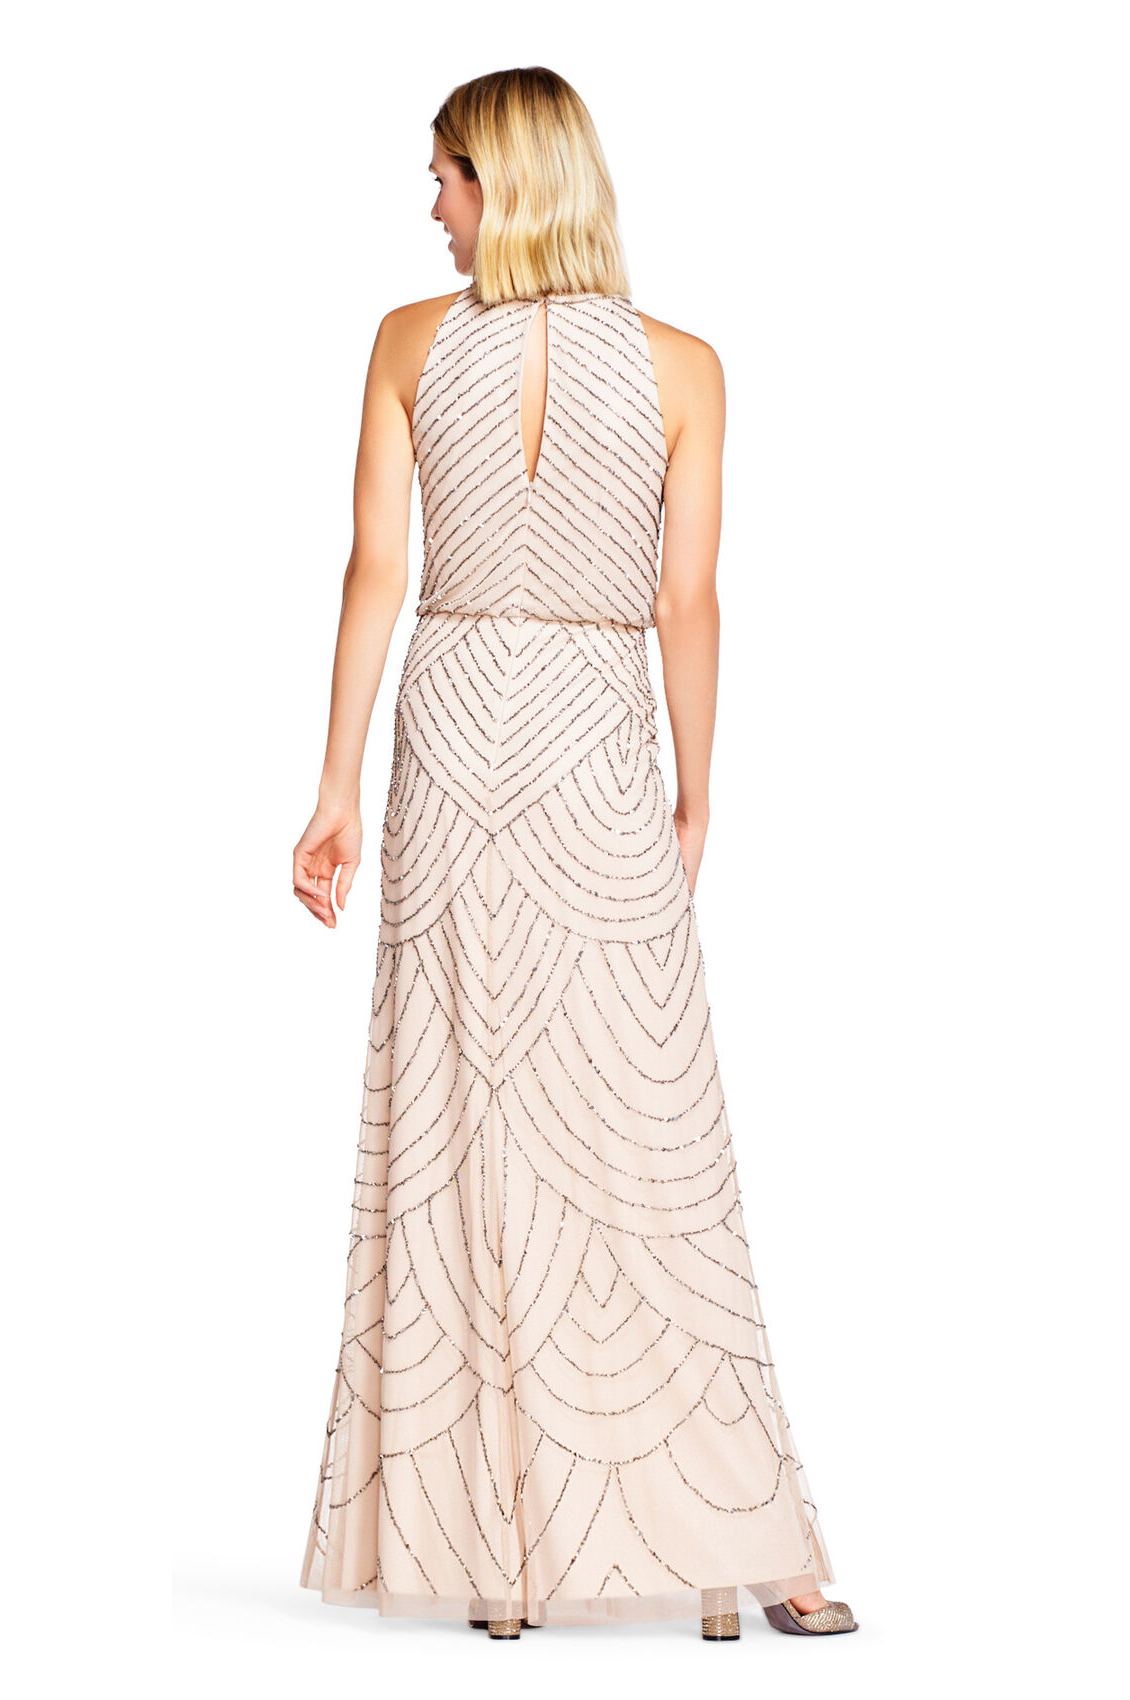 Nouveau Halter Art Deco Beaded Blouson Dress By Adrianna Papell - Nude